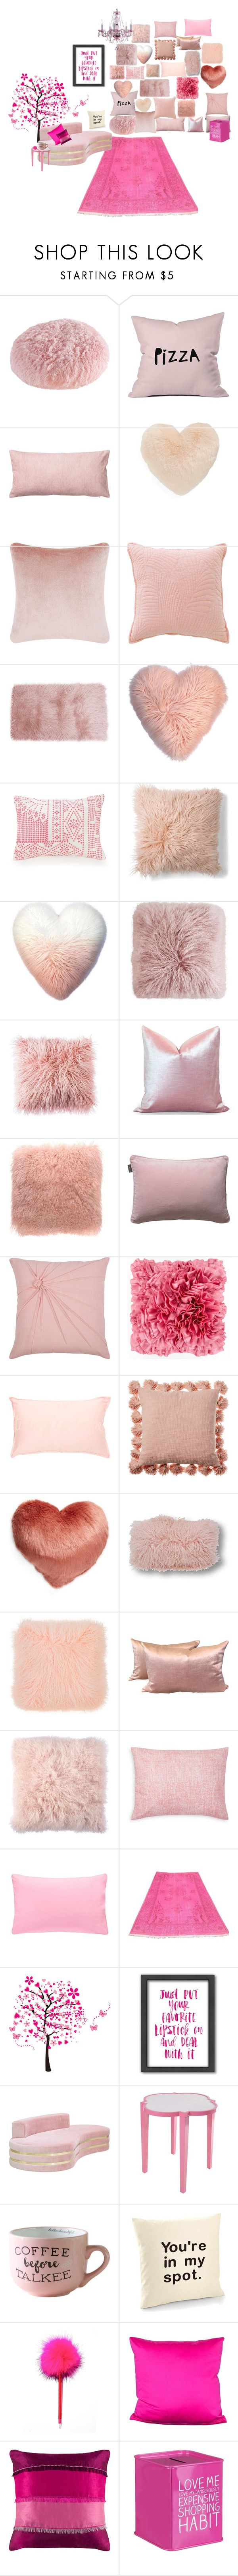 """Pink Room in a mansion"" by hharl-matthews ❤ liked on Polyvore featuring M. Kennedy Home, DENY Designs, Nordstrom, Tom Dixon, Vera Bradley, Eightmood, Acme Furniture, LINUM, Rizzy Home and Artisan Weaver"